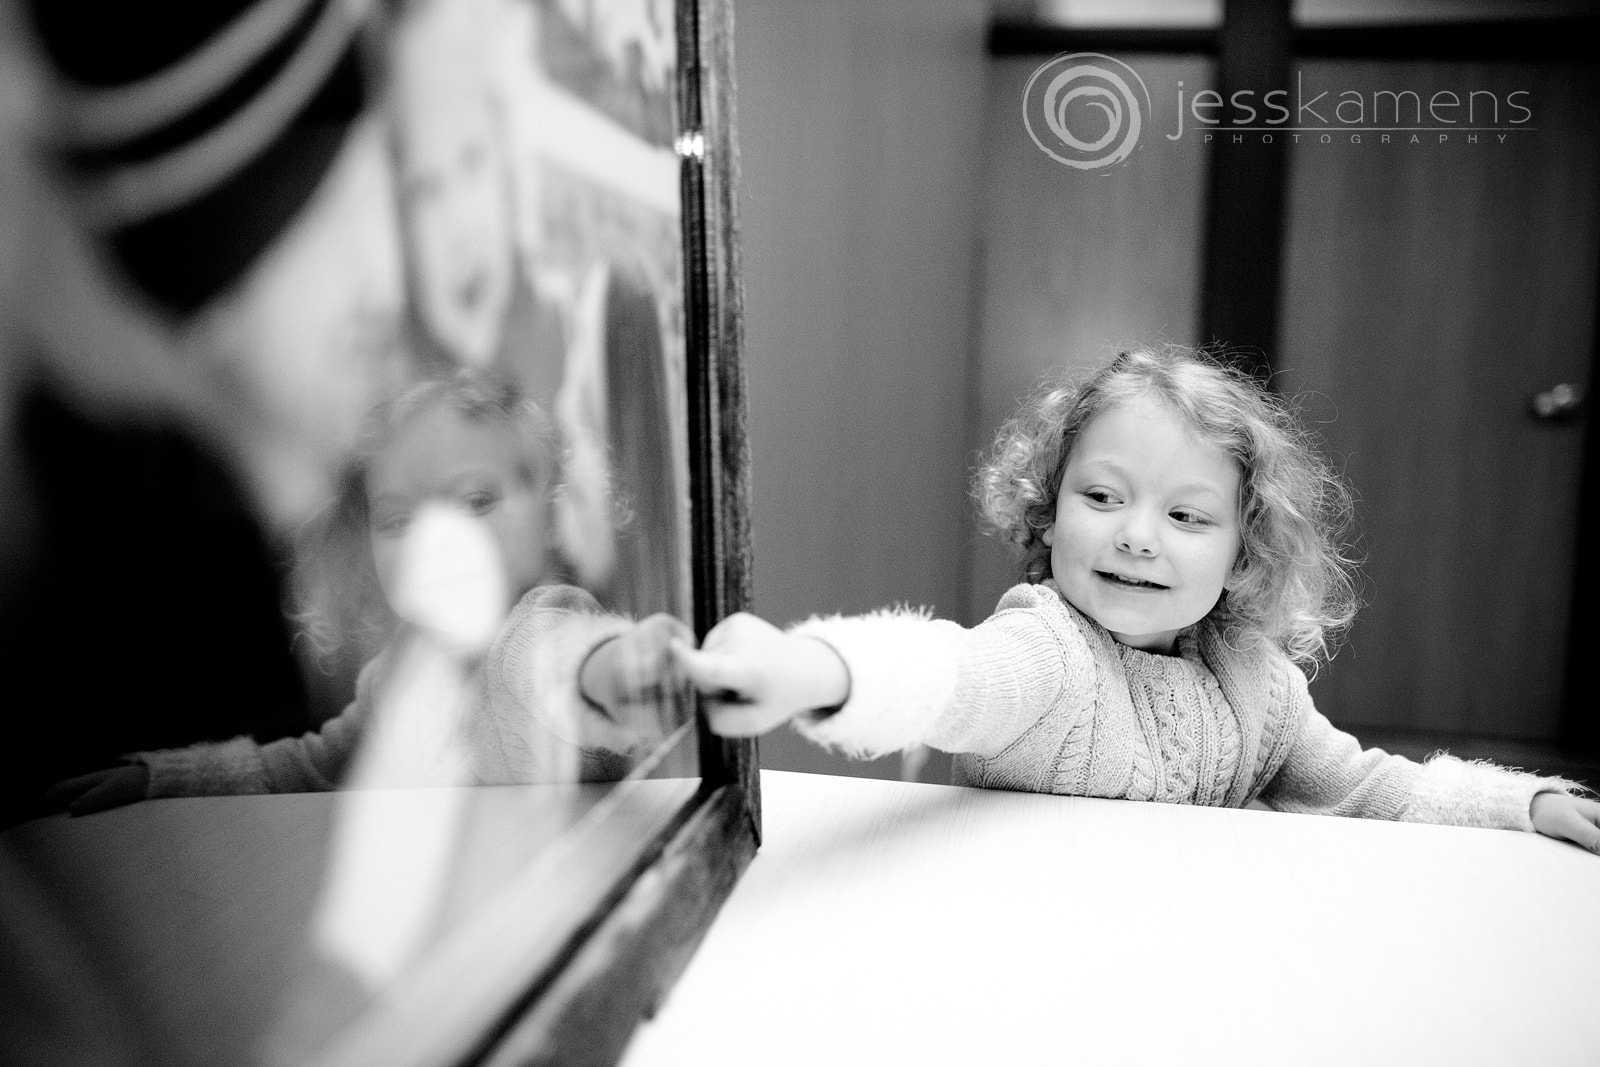 a little girl admires her family portrait and touches the glass with her finger while smiling.